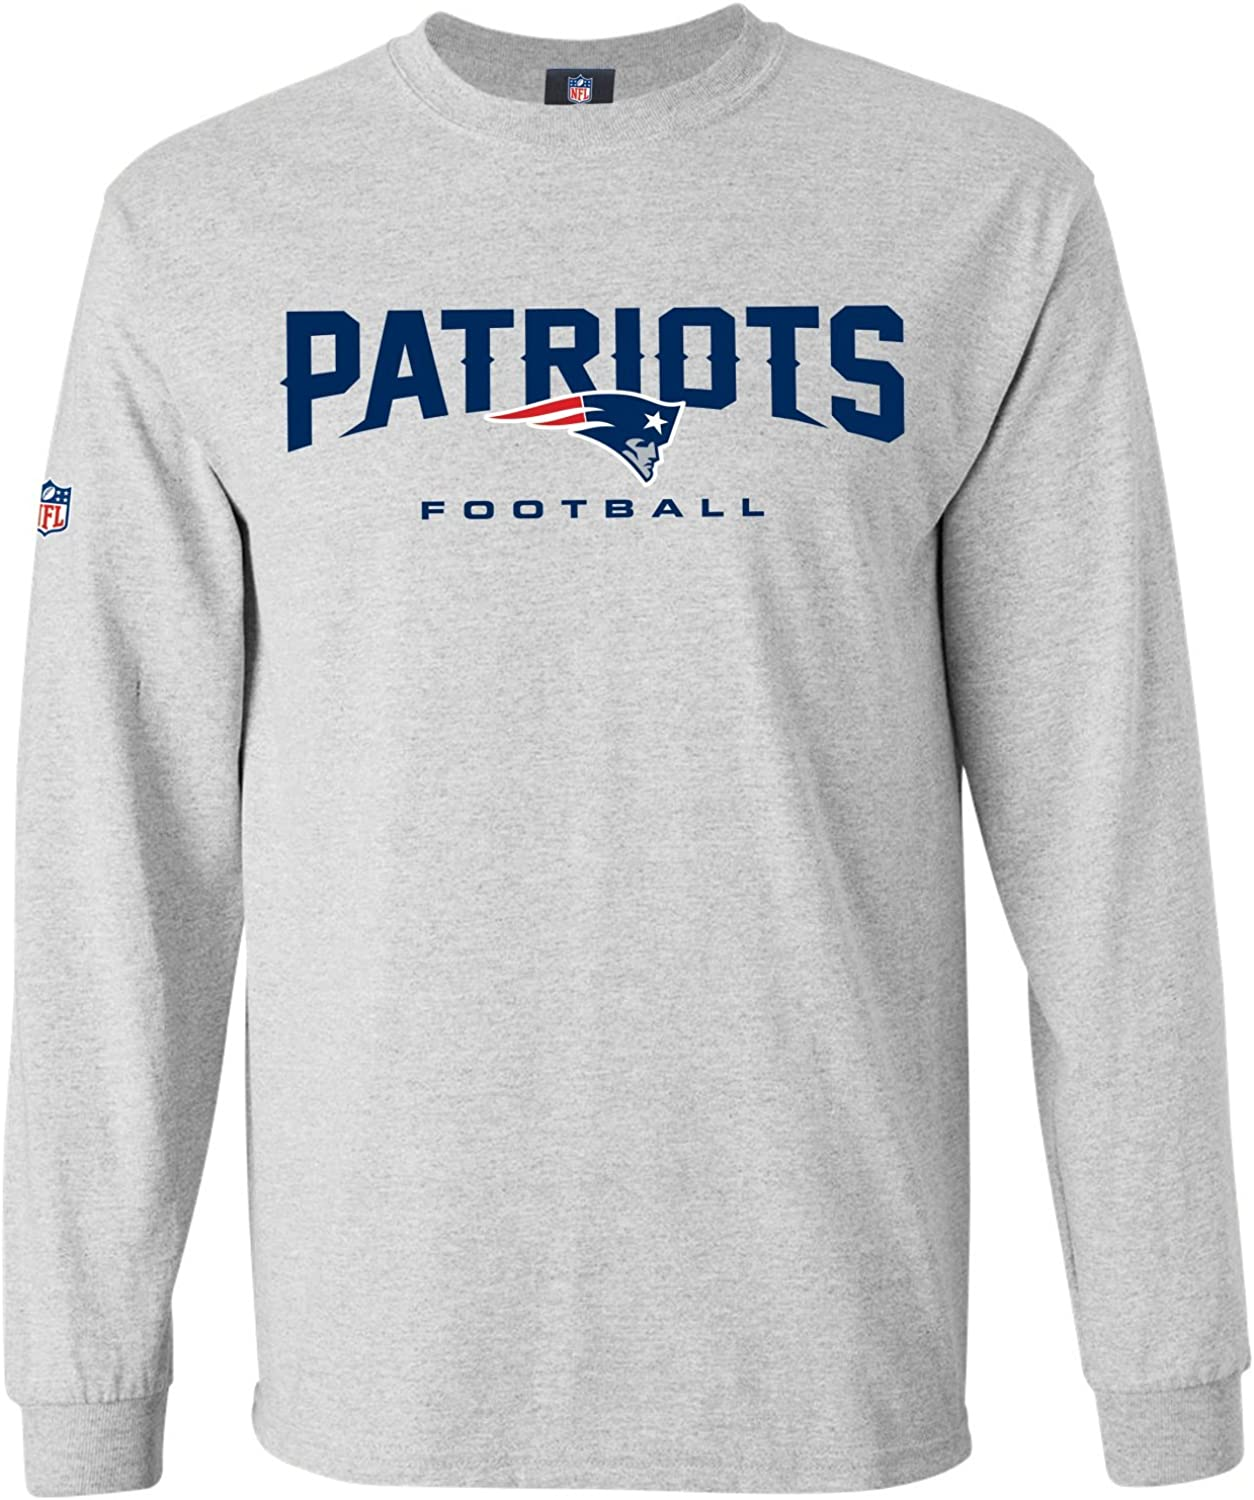 Majestic Our Team Longsleeve  New England Patriots Grey